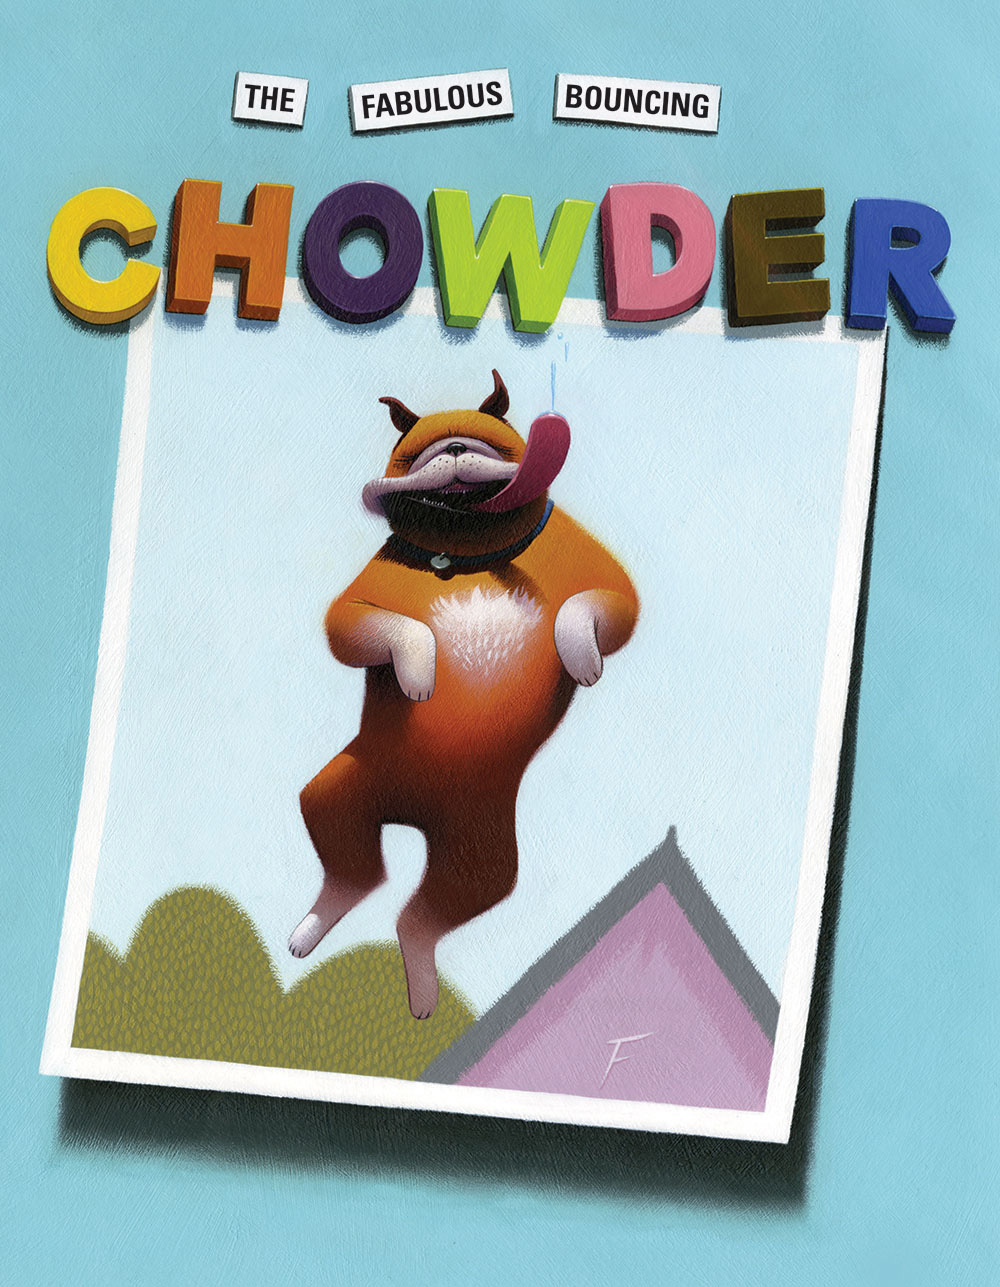 Brown, Peter 2007_09 - THE FABULOUS BOUNCING CHOWDER - PB - RLM PR.jpg